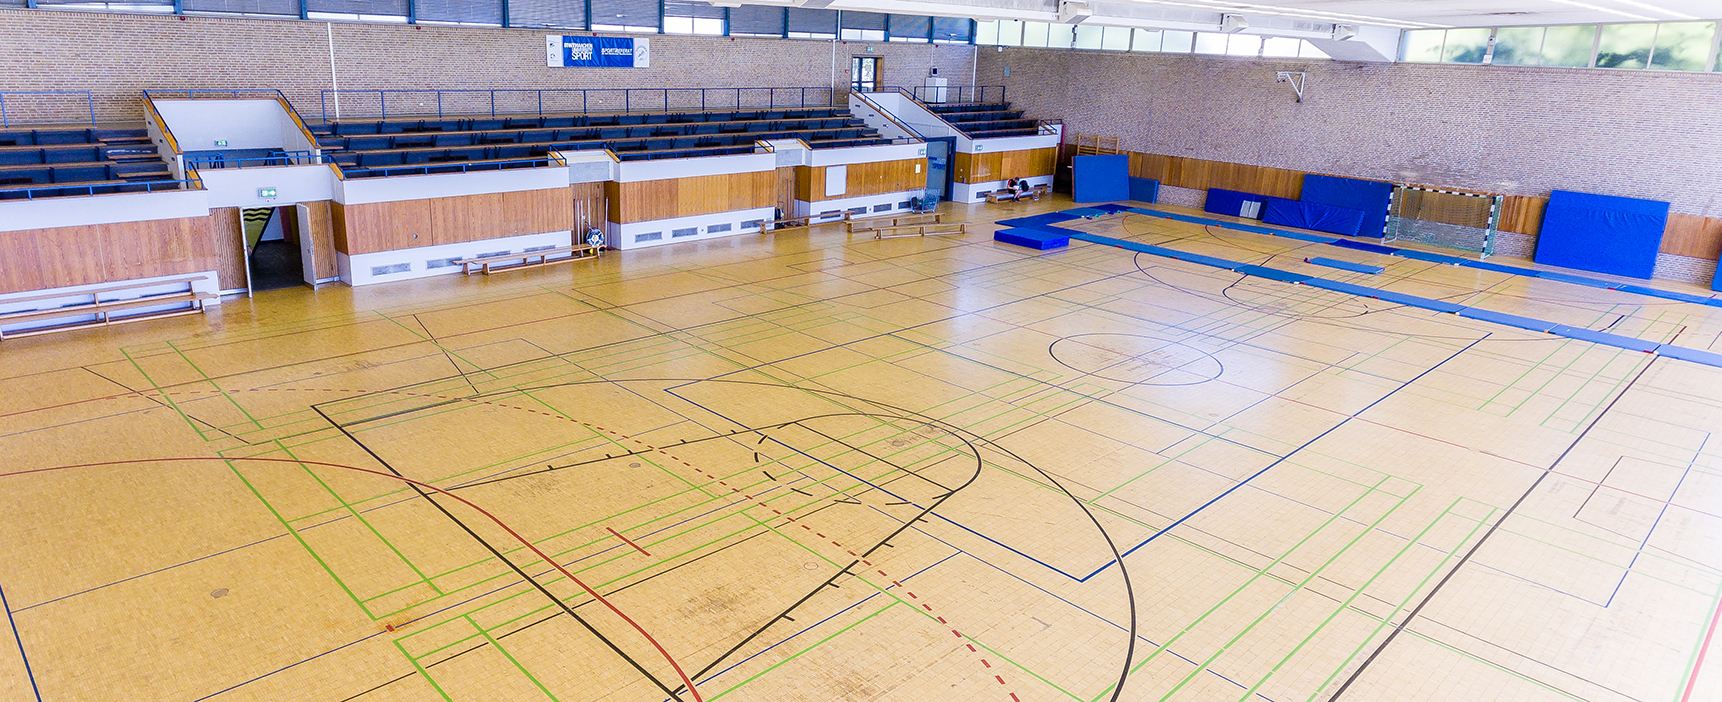 Sports hall at Königshügel